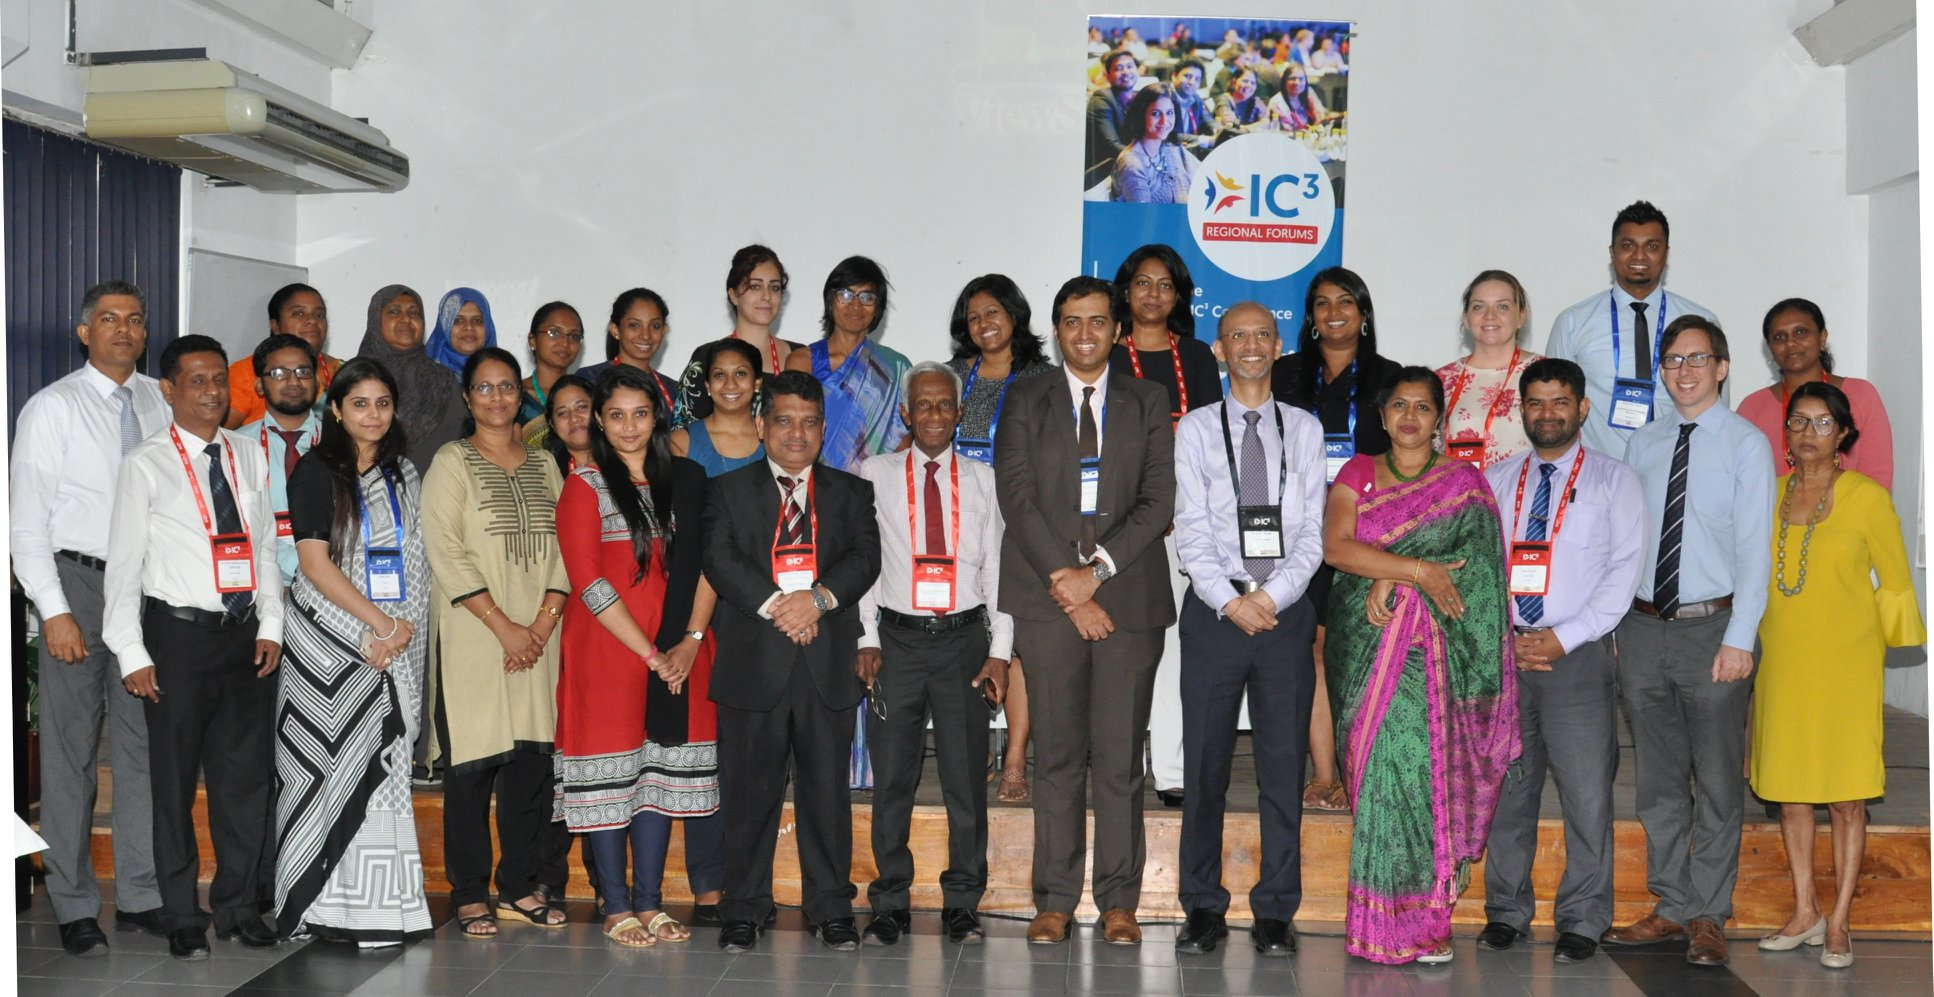 2018 IC3 Regional Forum in Colombo